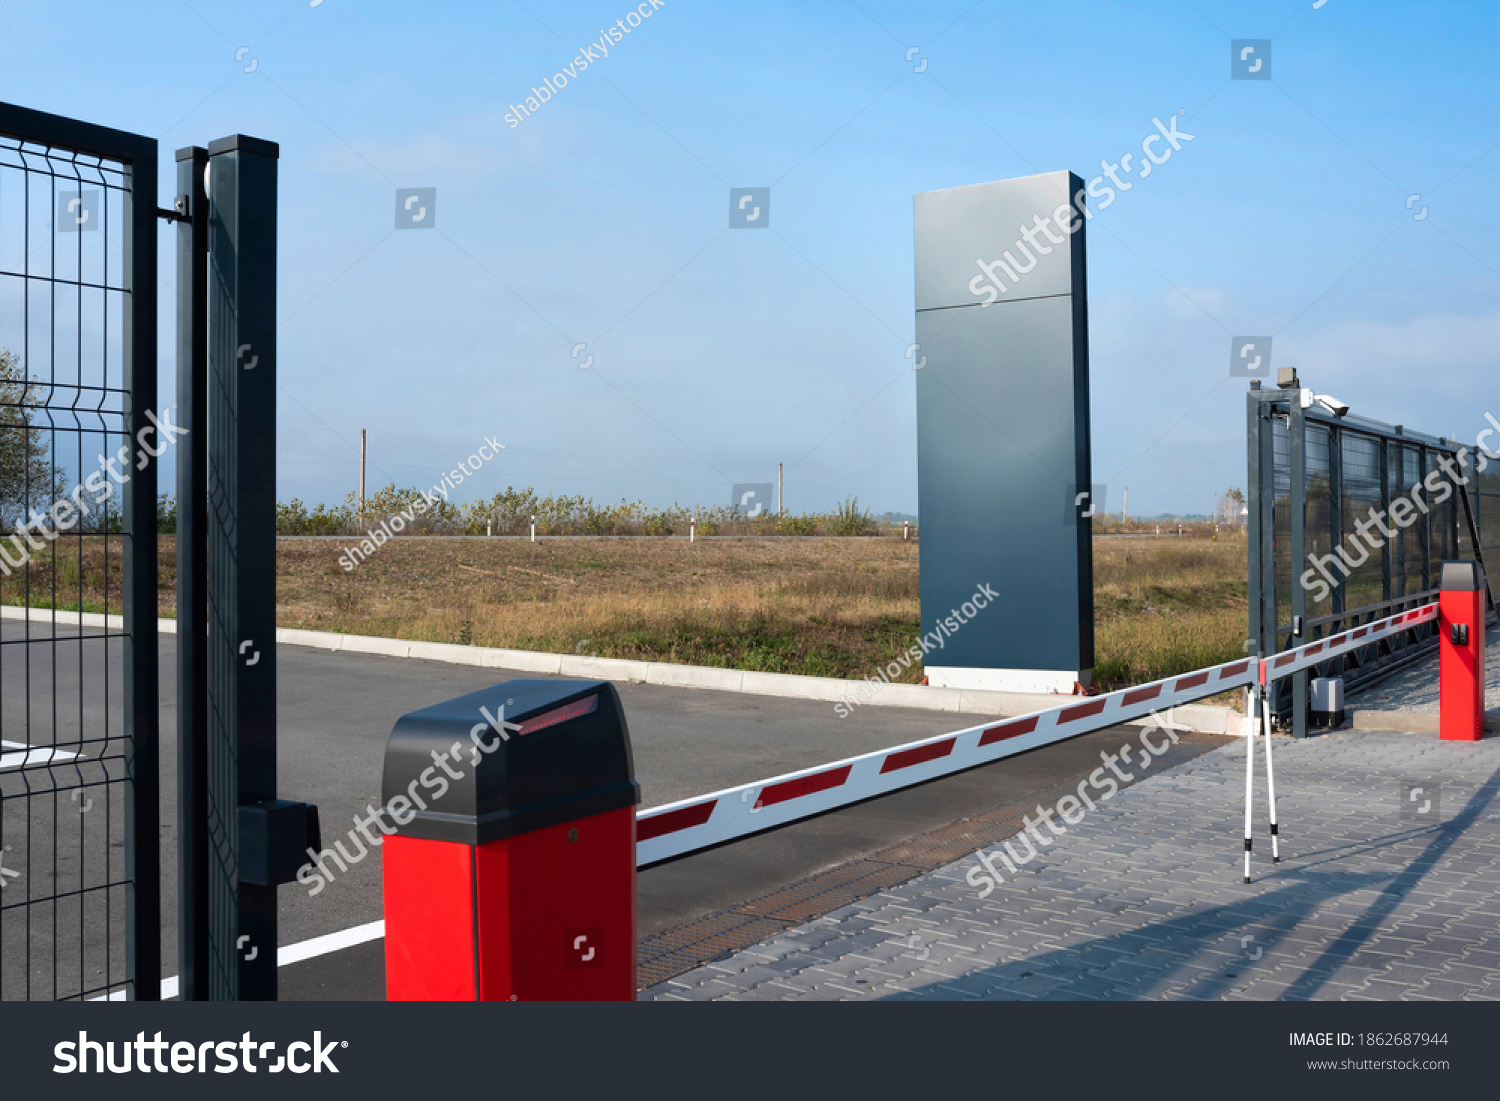 Closed automatic gate of the barrier. Automatic security system for private areas. Automatic entry system, parking barrier. #1862687944